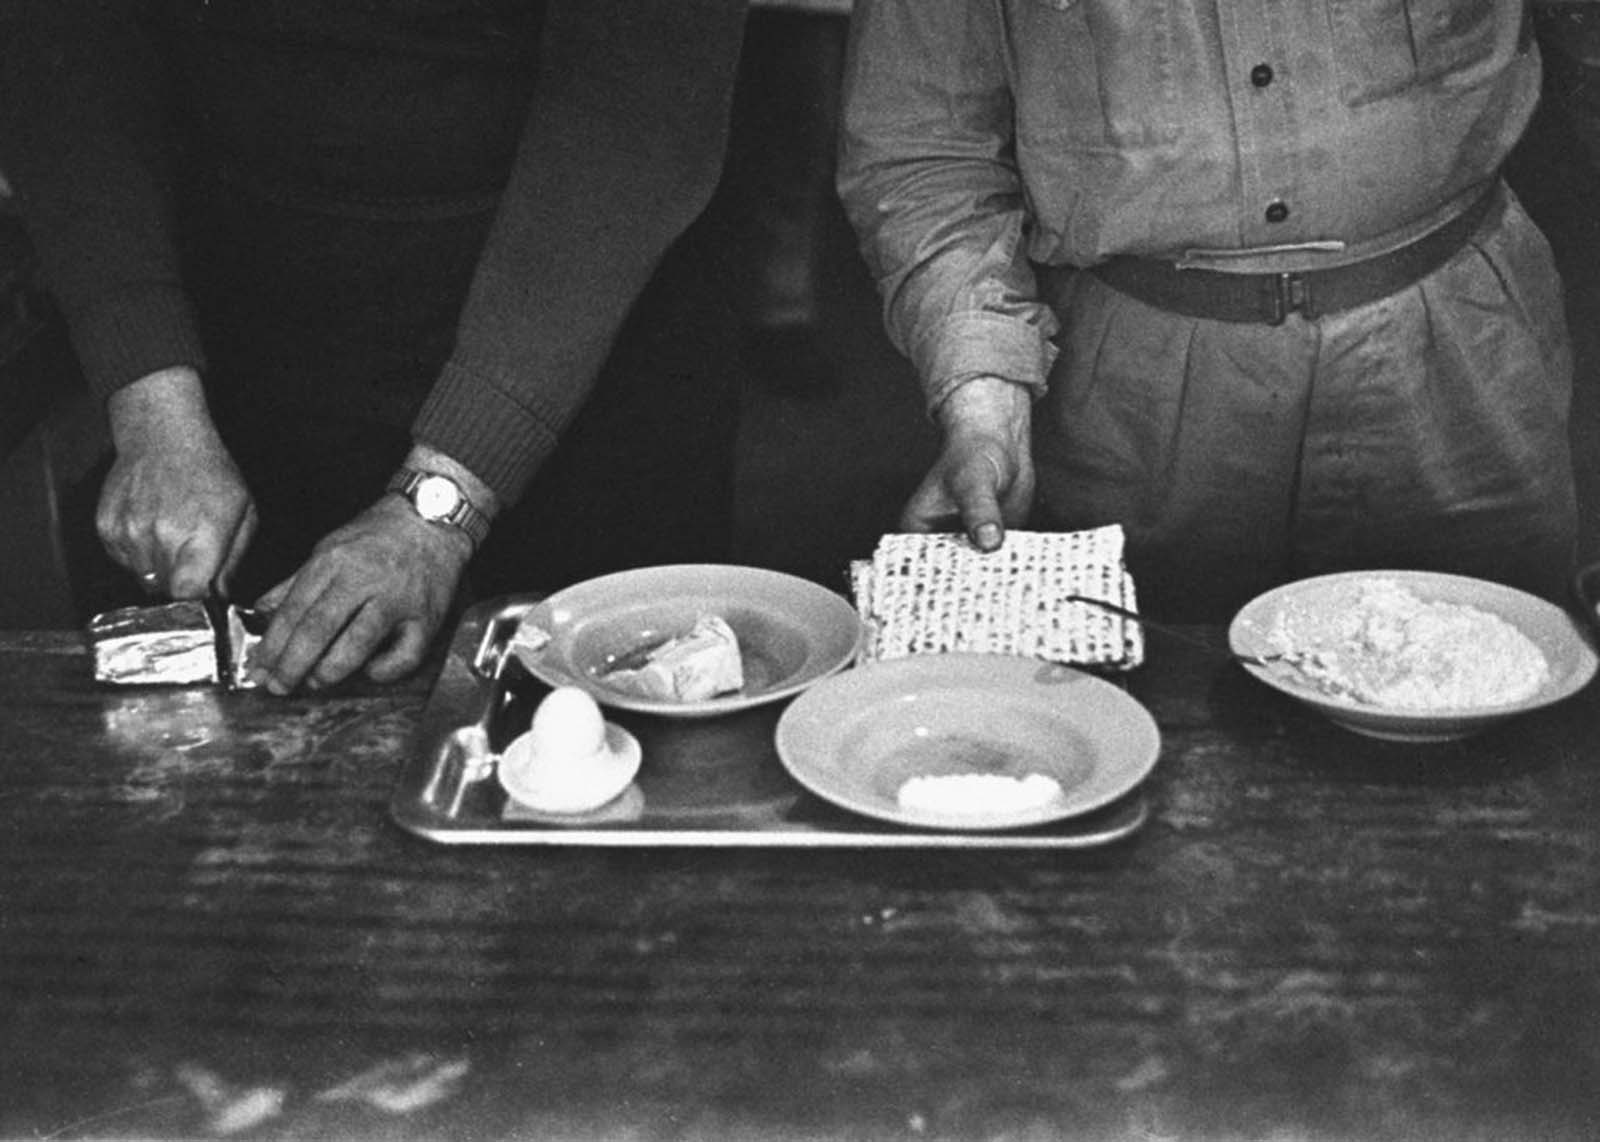 Served by a guard, Eichmann cut breakfast margarine as matzo was put on his tray during Passover week, shortly before trial.